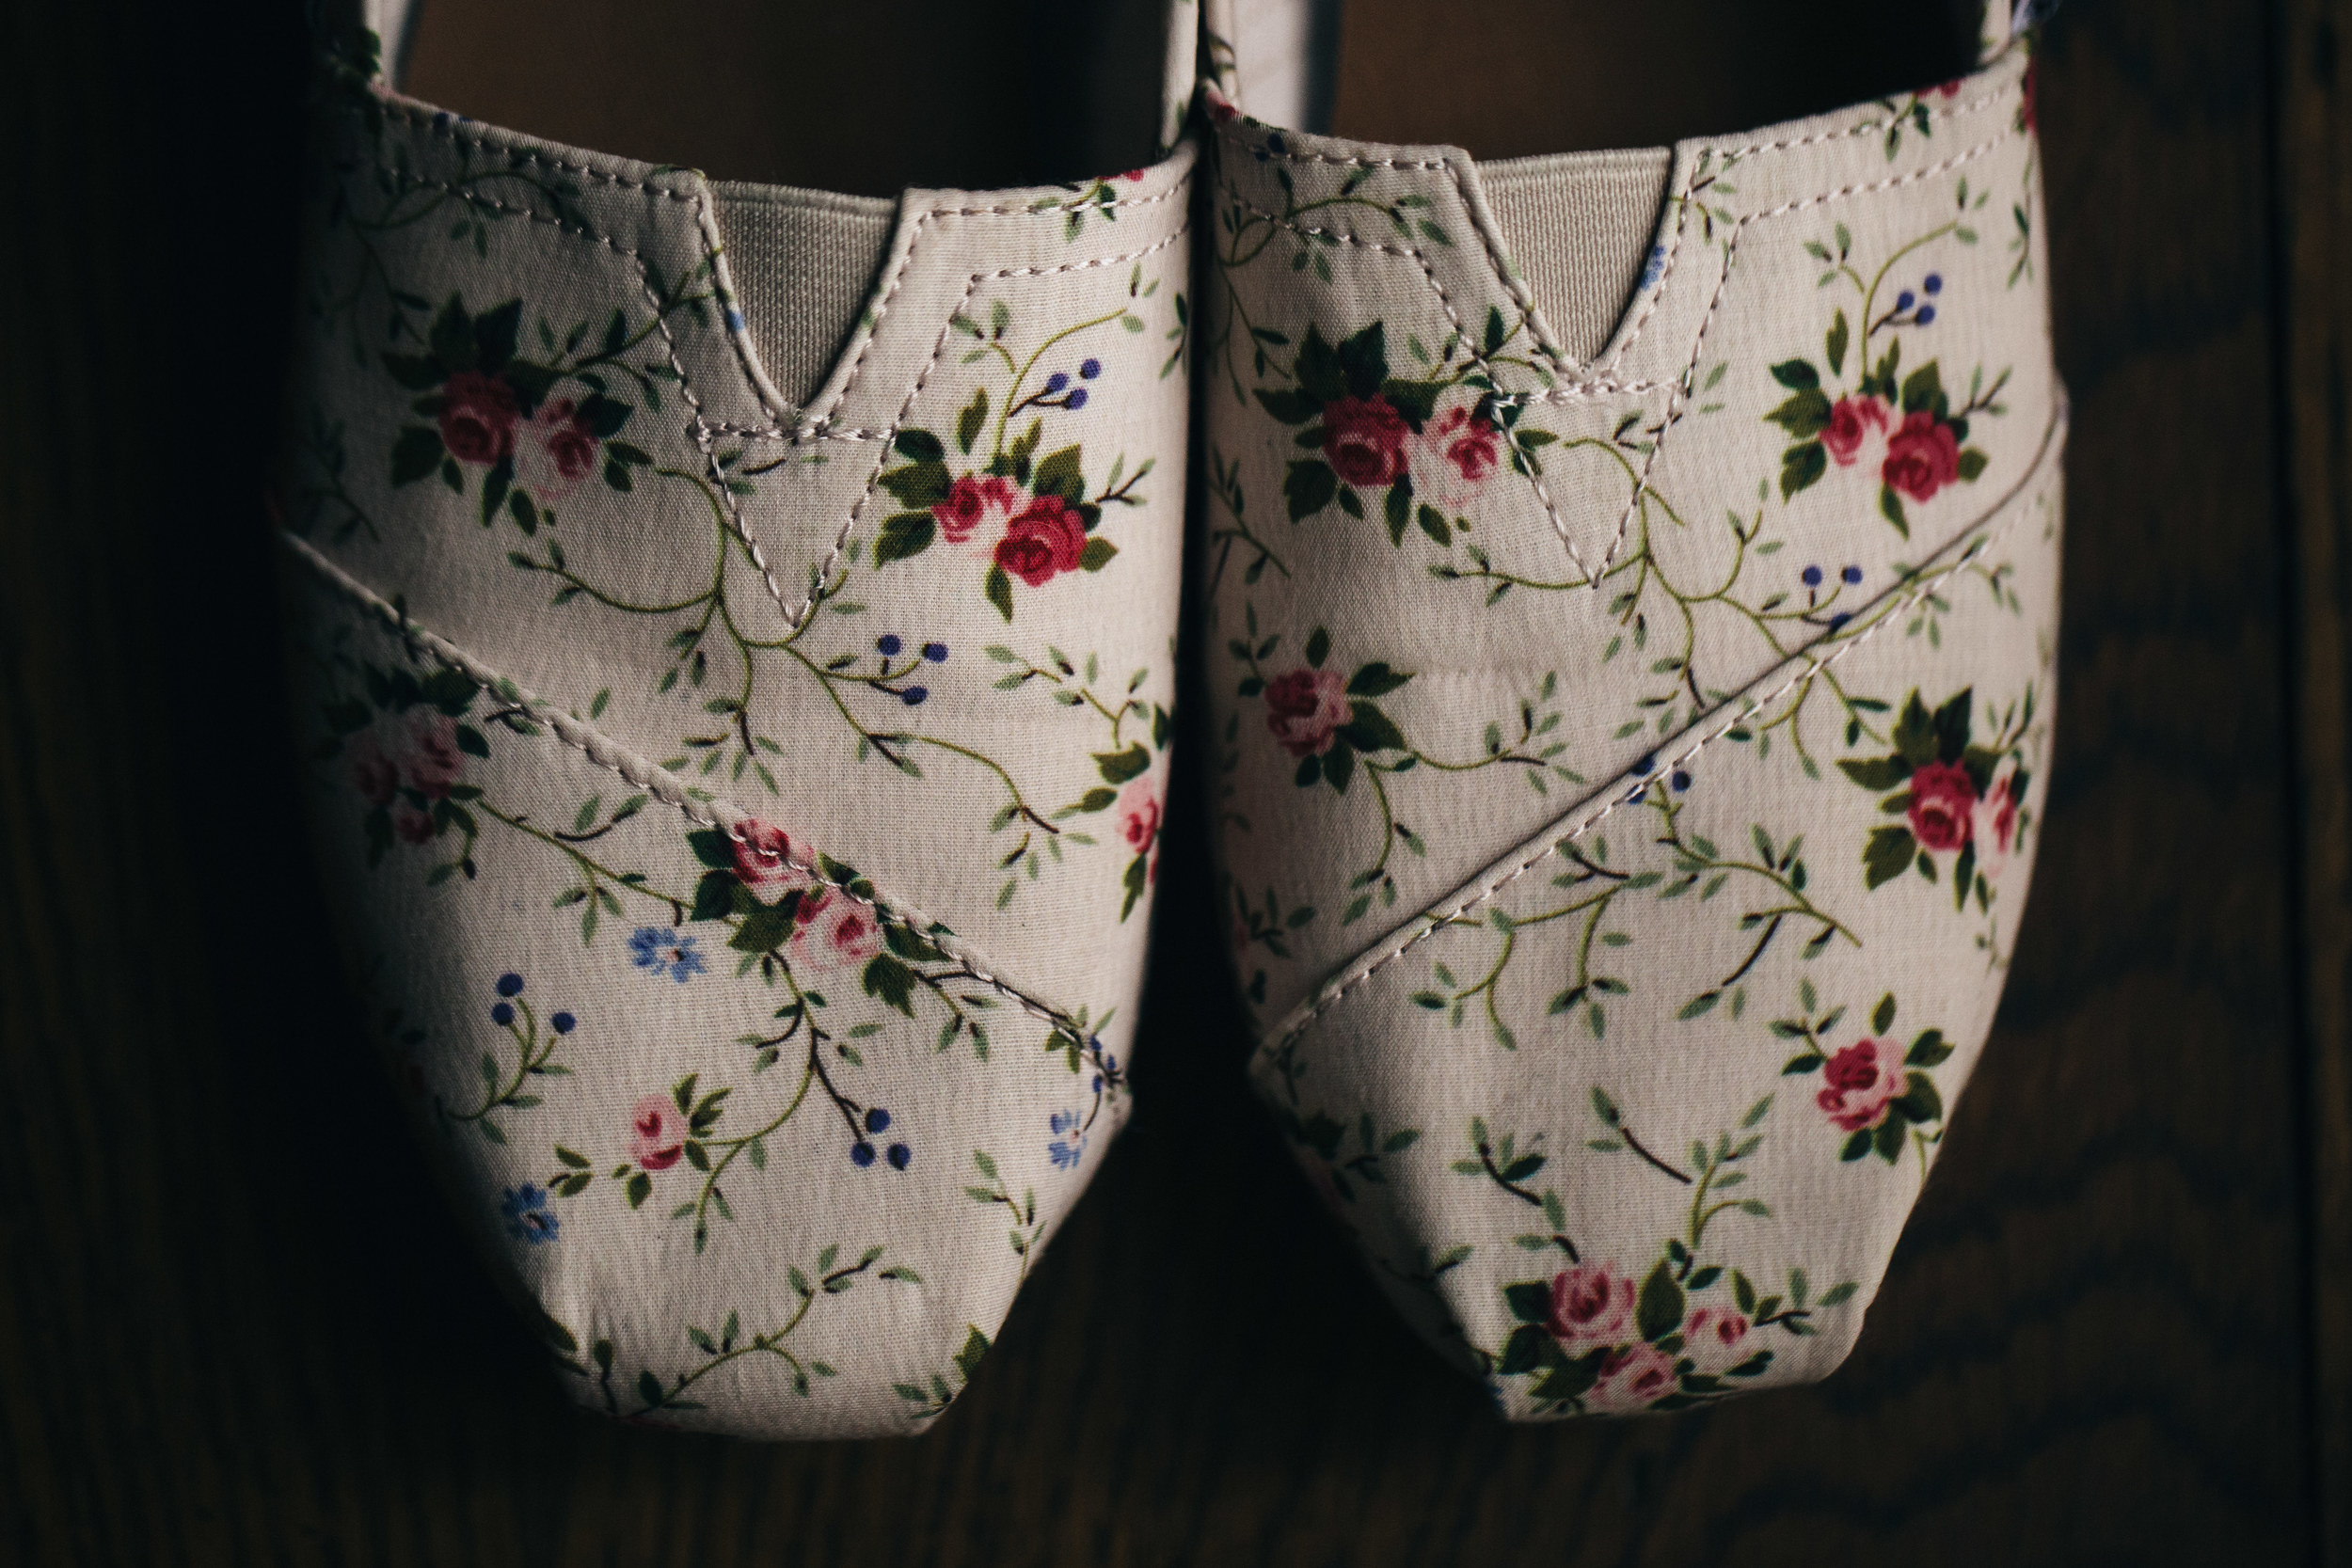 Floral wedding shoes from TOMS.